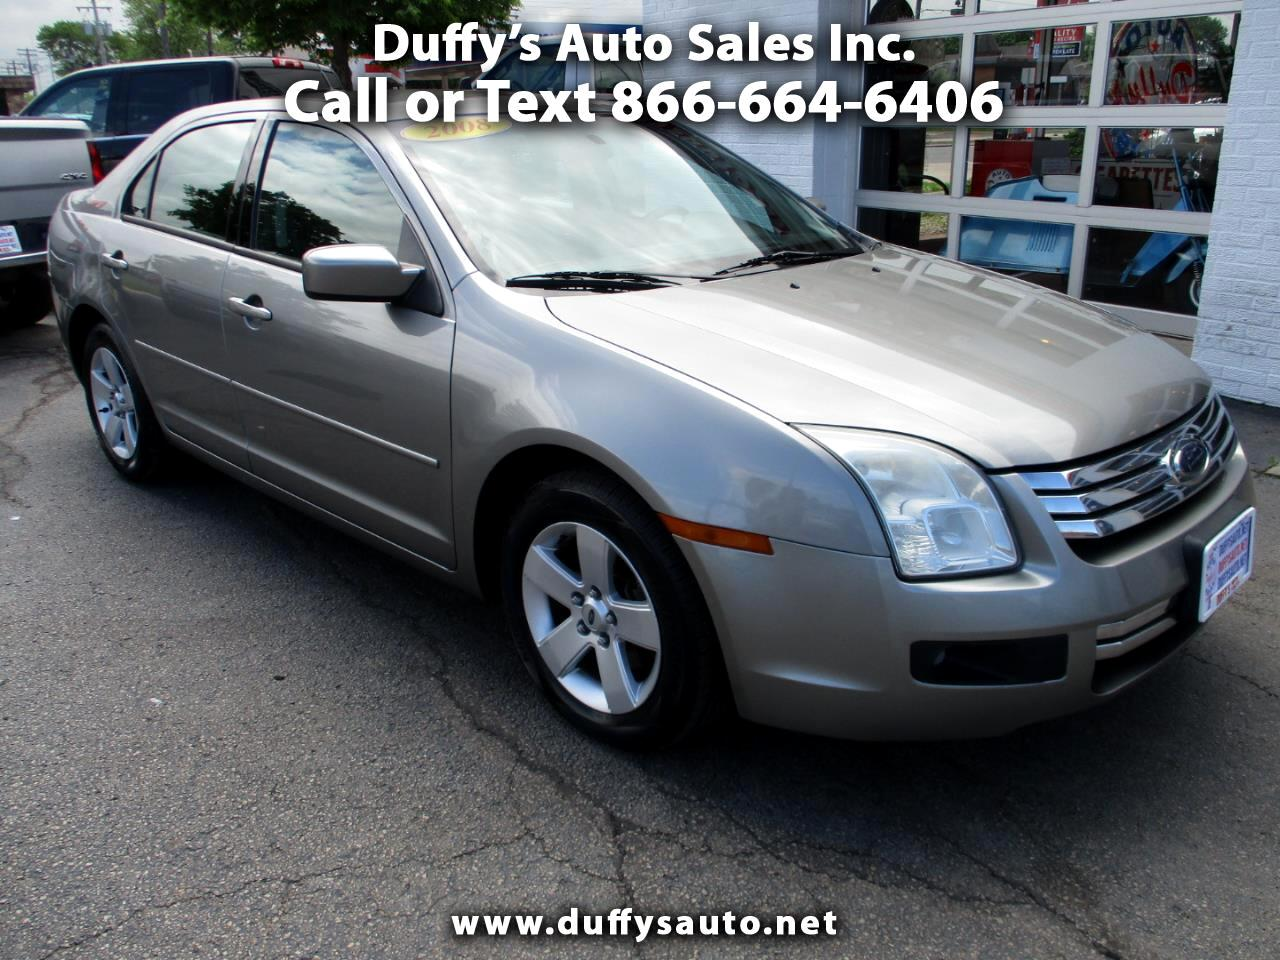 2008 Ford Fusion 4dr Sdn V6 SE FWD